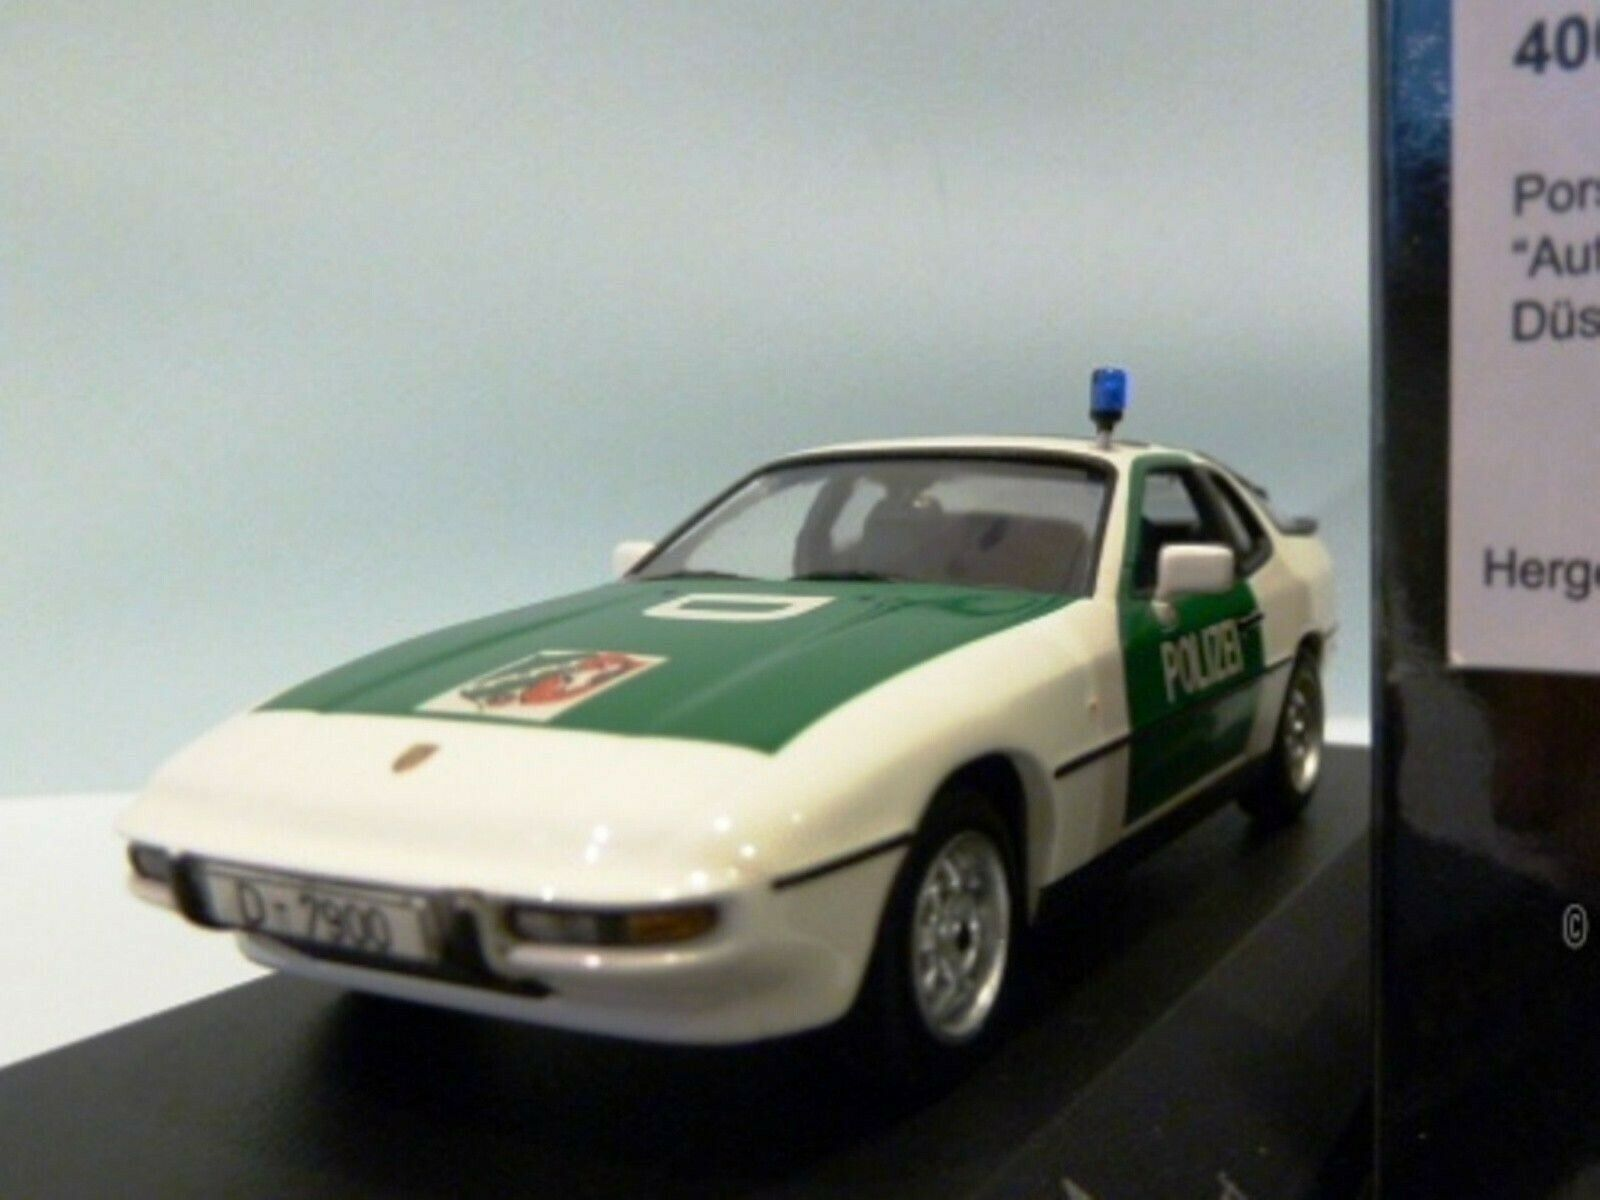 WOW EXTREMELY RARE Porsche 924 2.5L 1984 Police 1 43 Minichamps-911 944 968 GT2